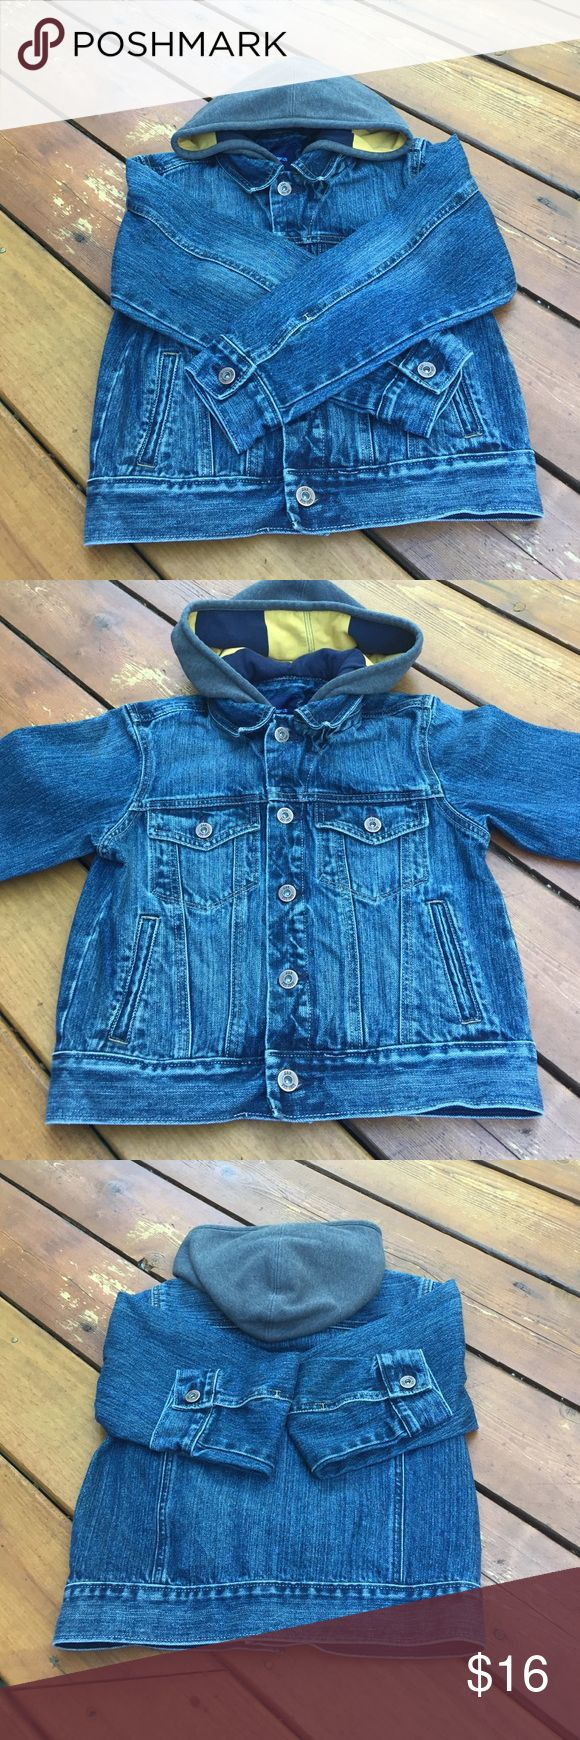 HOST PICK!Boy's Gap Denim Jacket 8/10/16 Boy's Gap Denim Jacket. So ruggedly cute! Size:Medium. Very gently used. EUC. Color is denim blue hood is not detachable the color us gray on outside & inside hood is navy blue & yellow stripe. Long sleeves. Button closure. 2 front button chest pockets & 2 front regular pockets. Shell 100% cotton. Hood 80% cotton. 20% polyester. Machine wash. Tumble dry. NO TRADES. Gap Jackets & Coats Jean Jackets